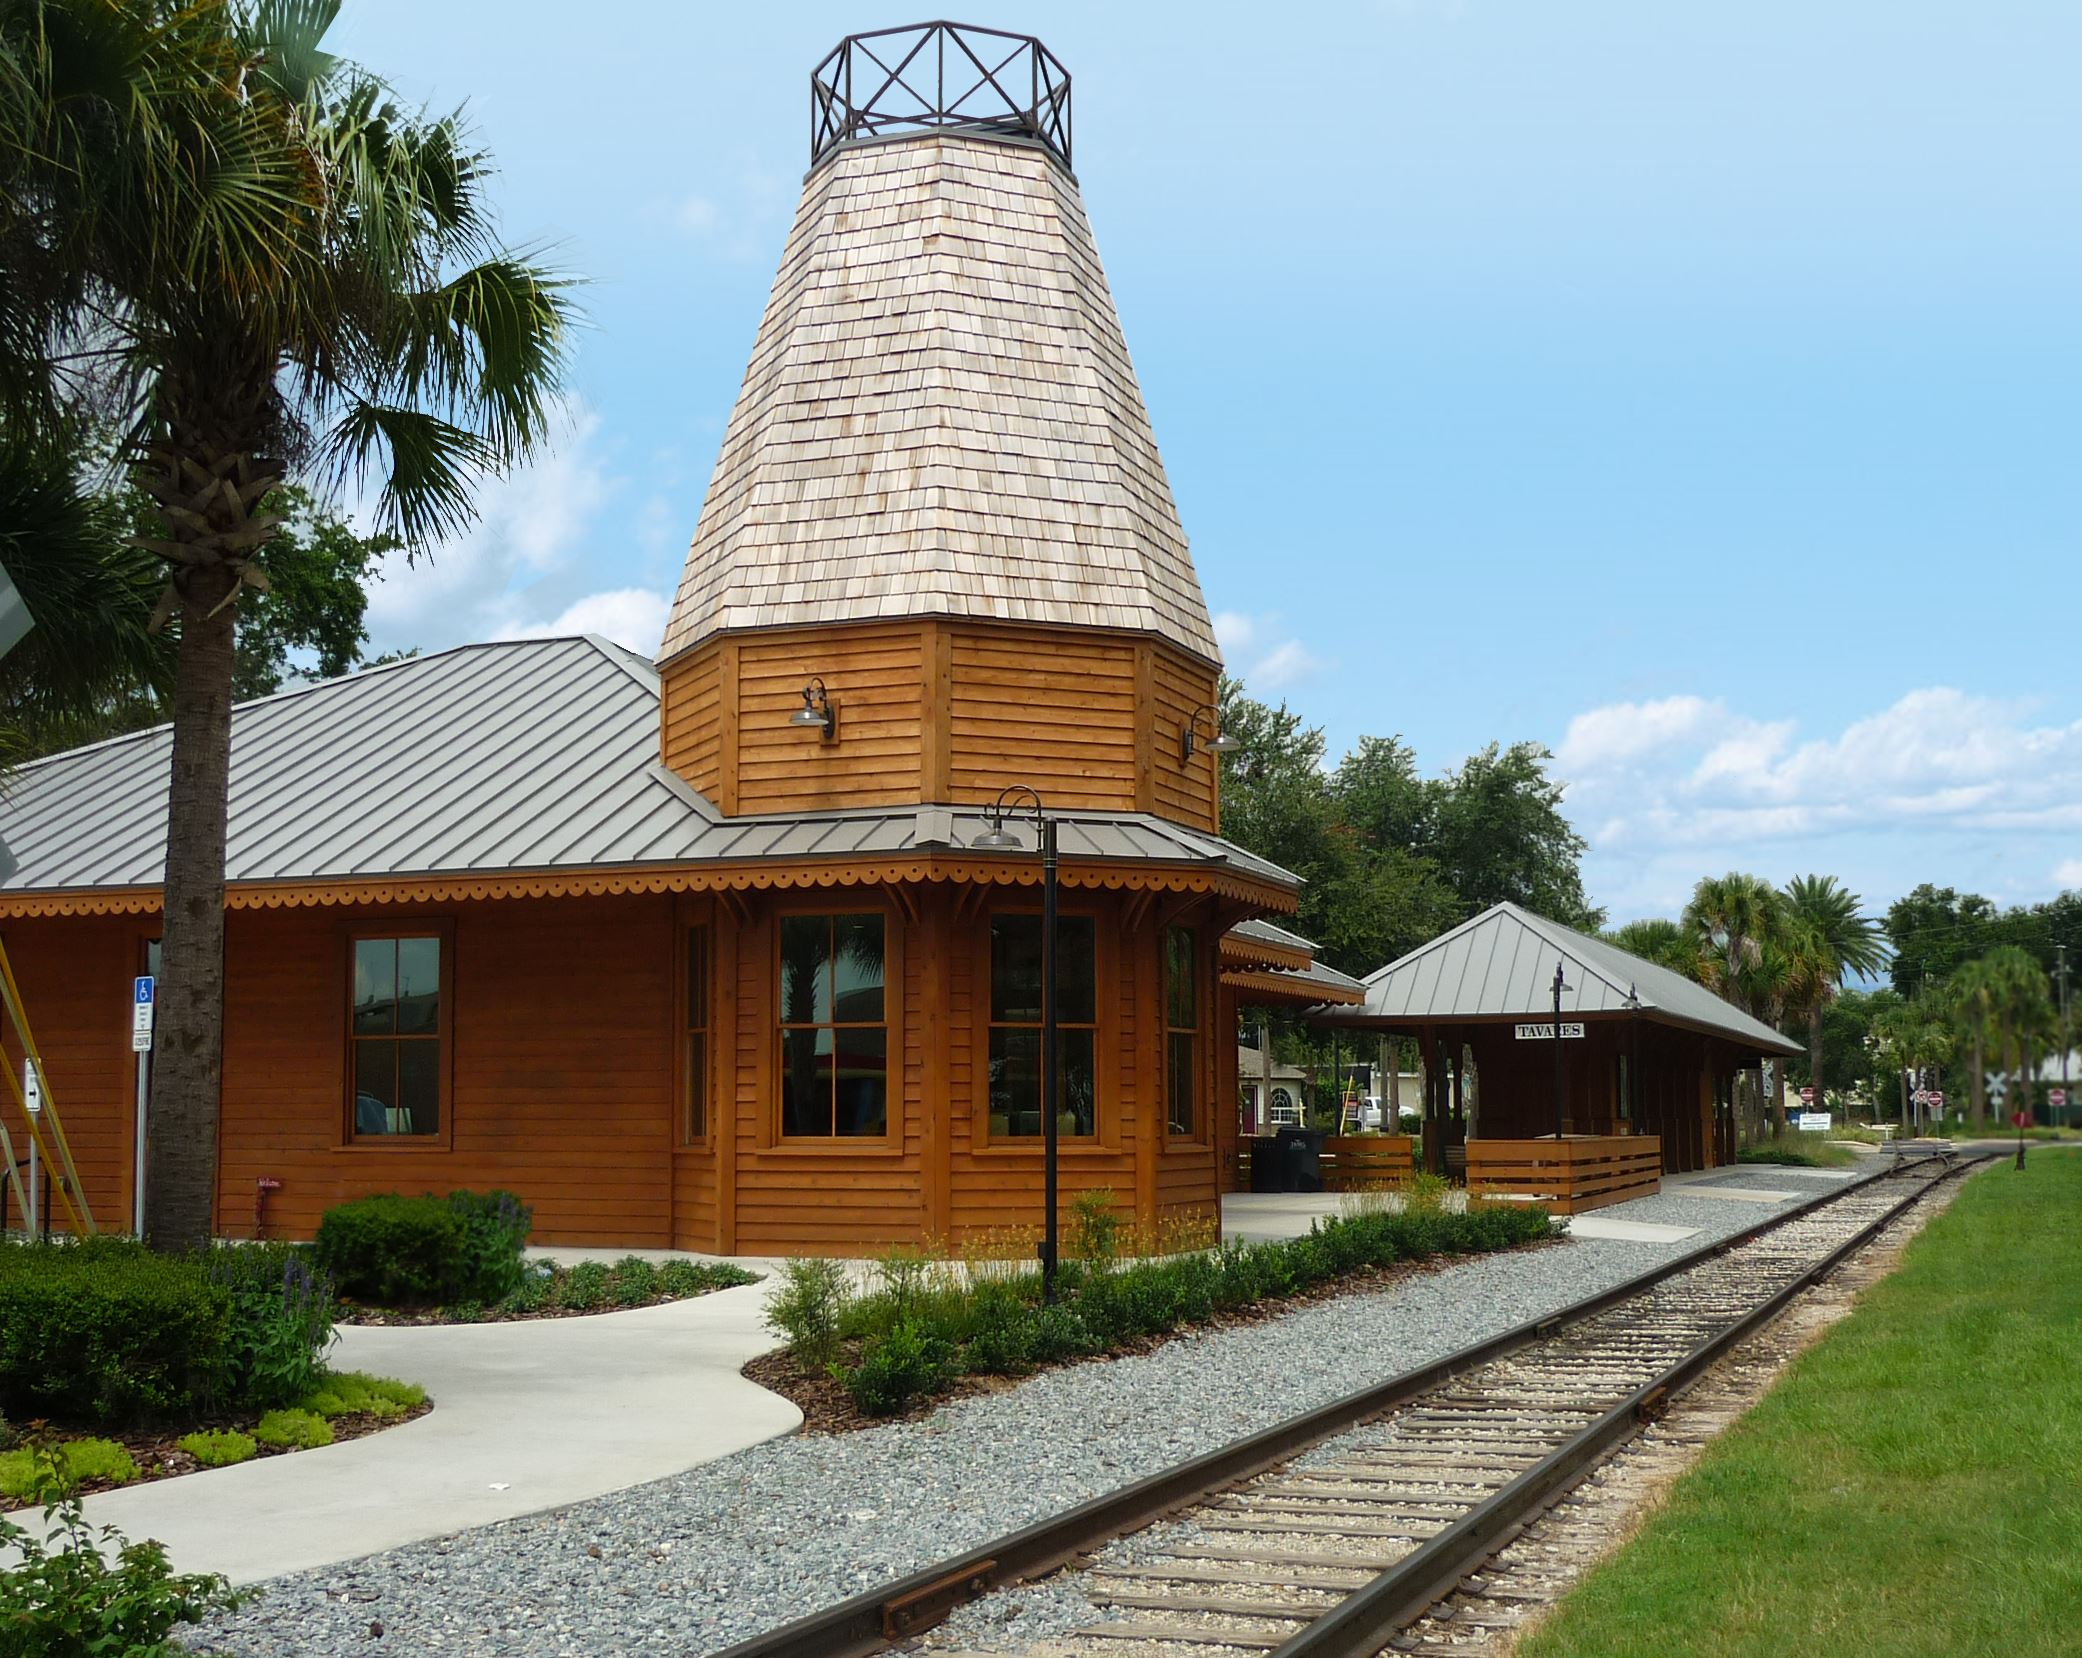 Photo of Tavares Train Station